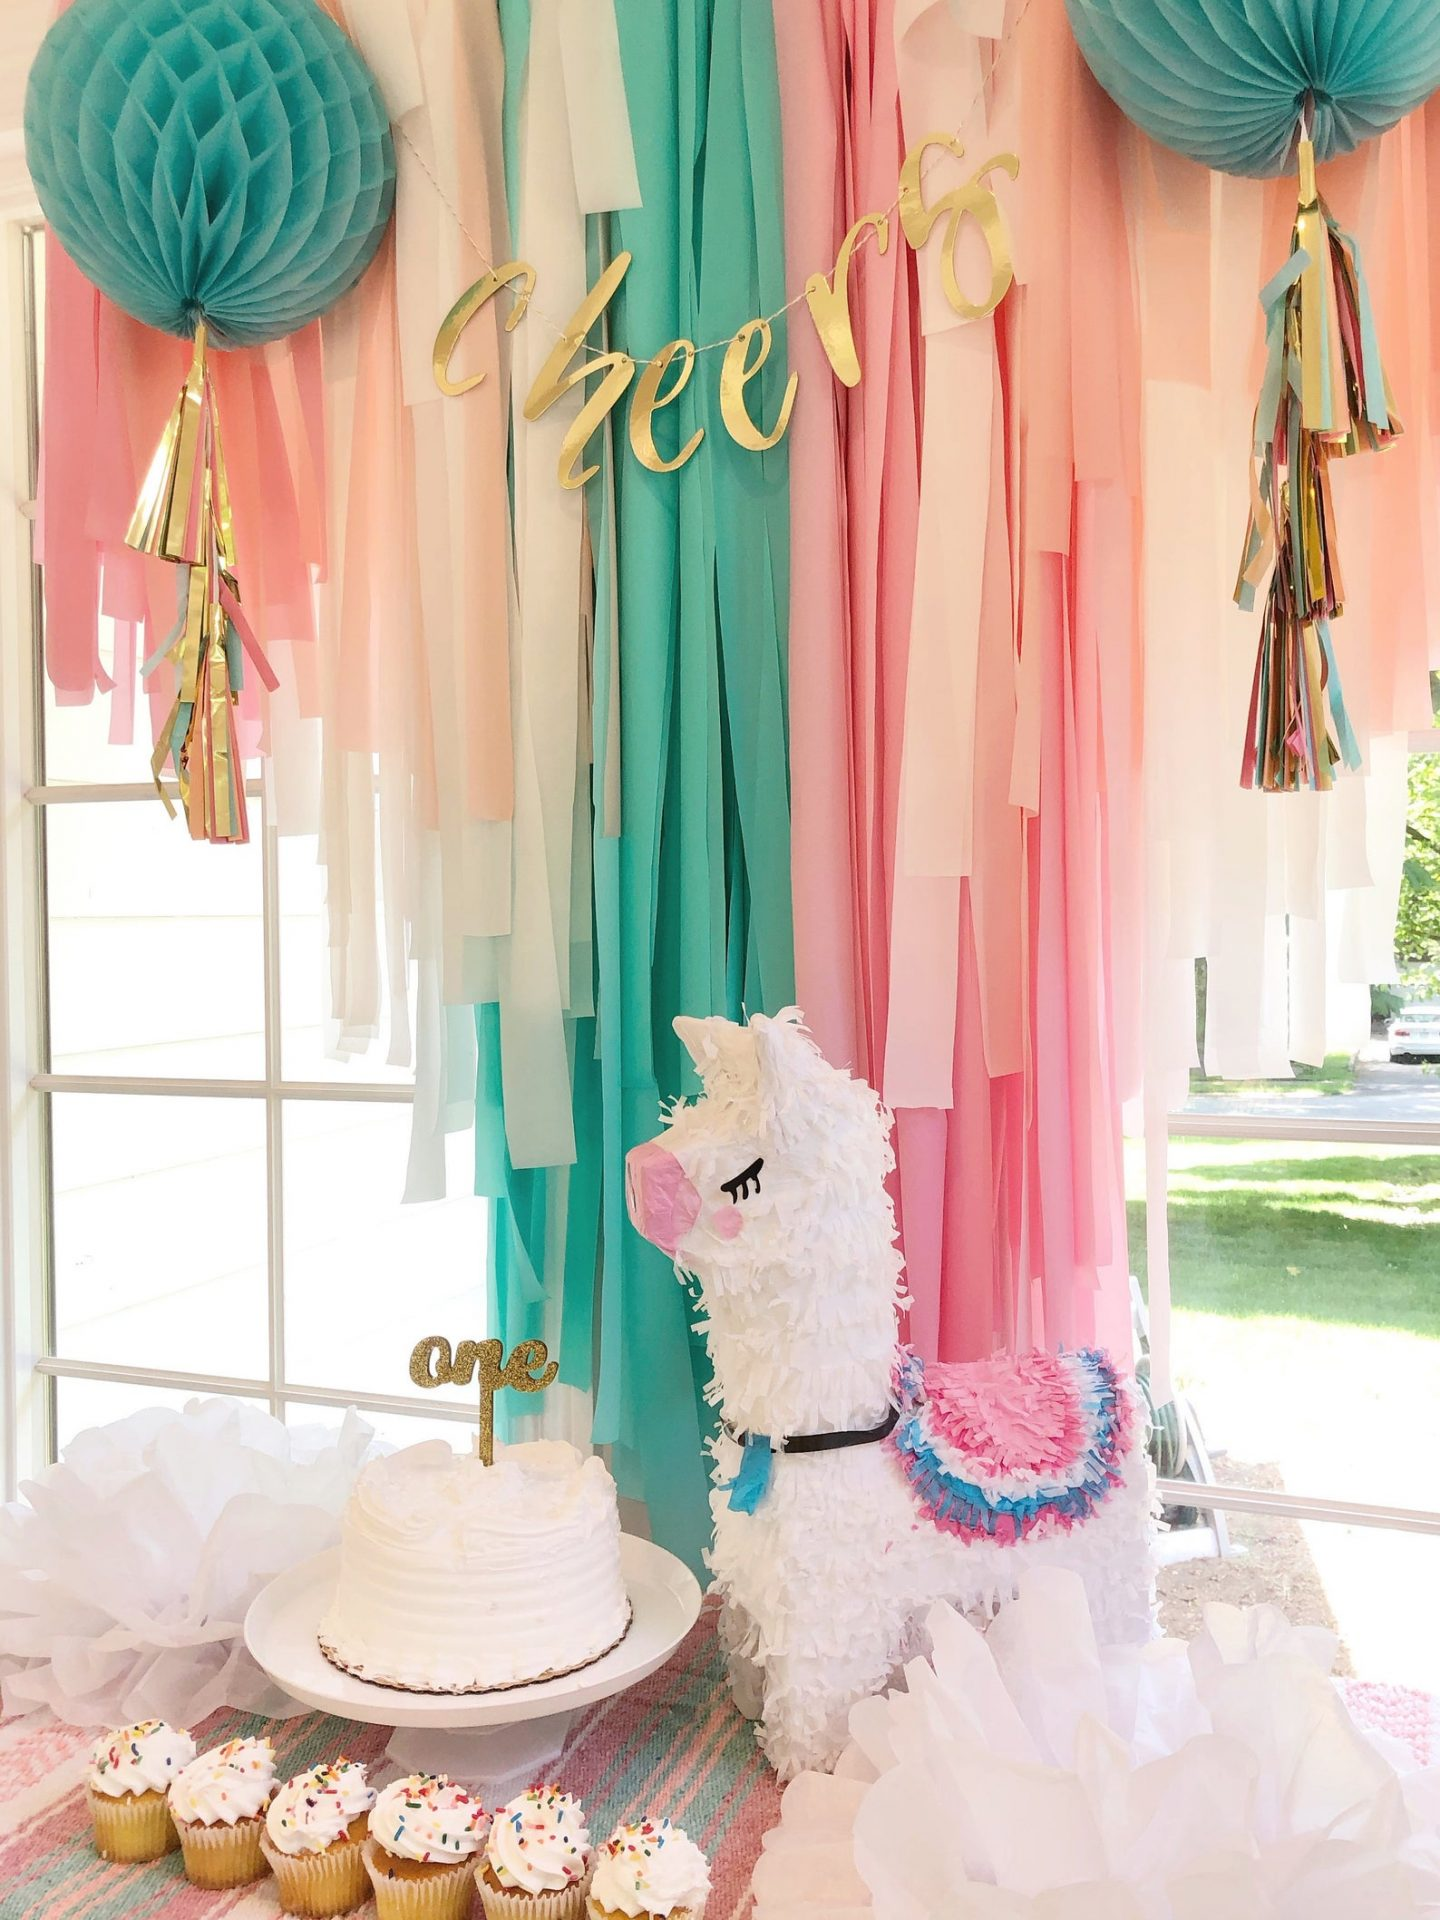 Turquoise and pink llama fringe curtain for a birthday party